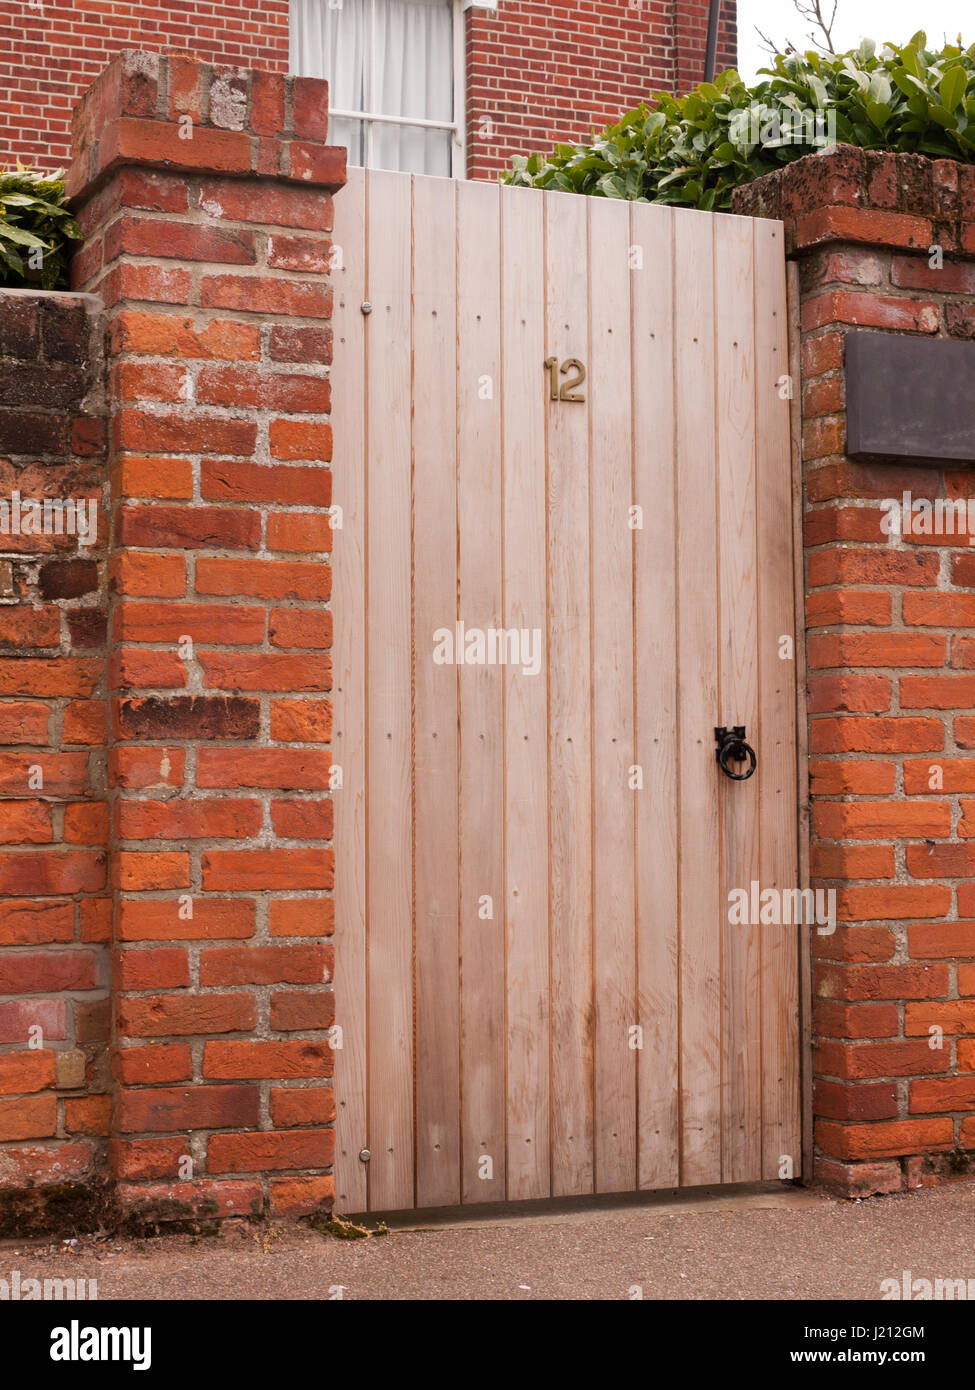 a wooden door outside closed with the number 12 on it and attached to a high wall on a house private and personal Stock Photo